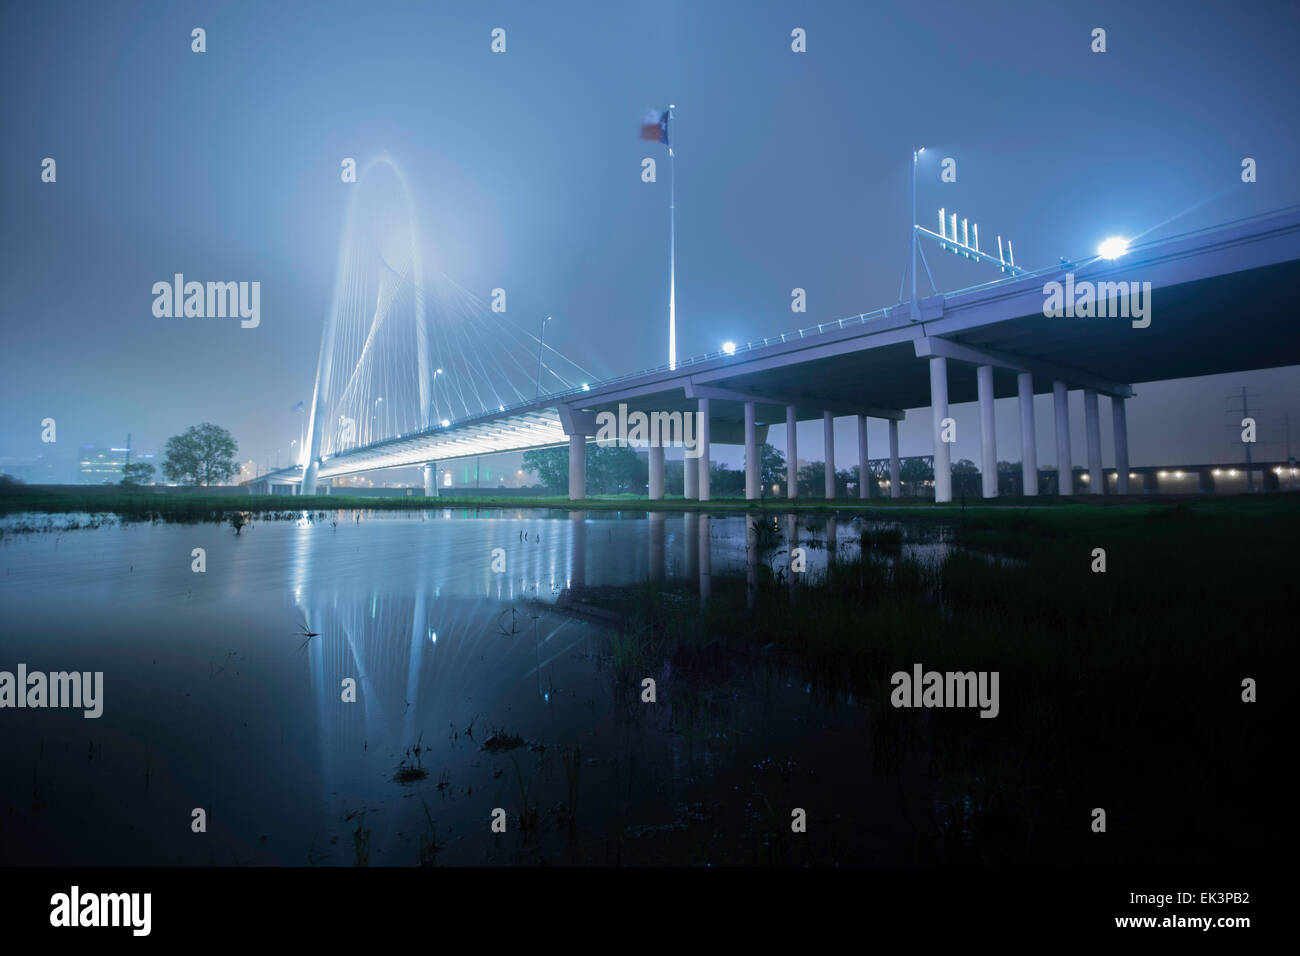 Wide long exposure shot of Margaret Hunt Hill Bridge in downtown Dallas Texas on a misty foggy night with a reflection. - Stock Image